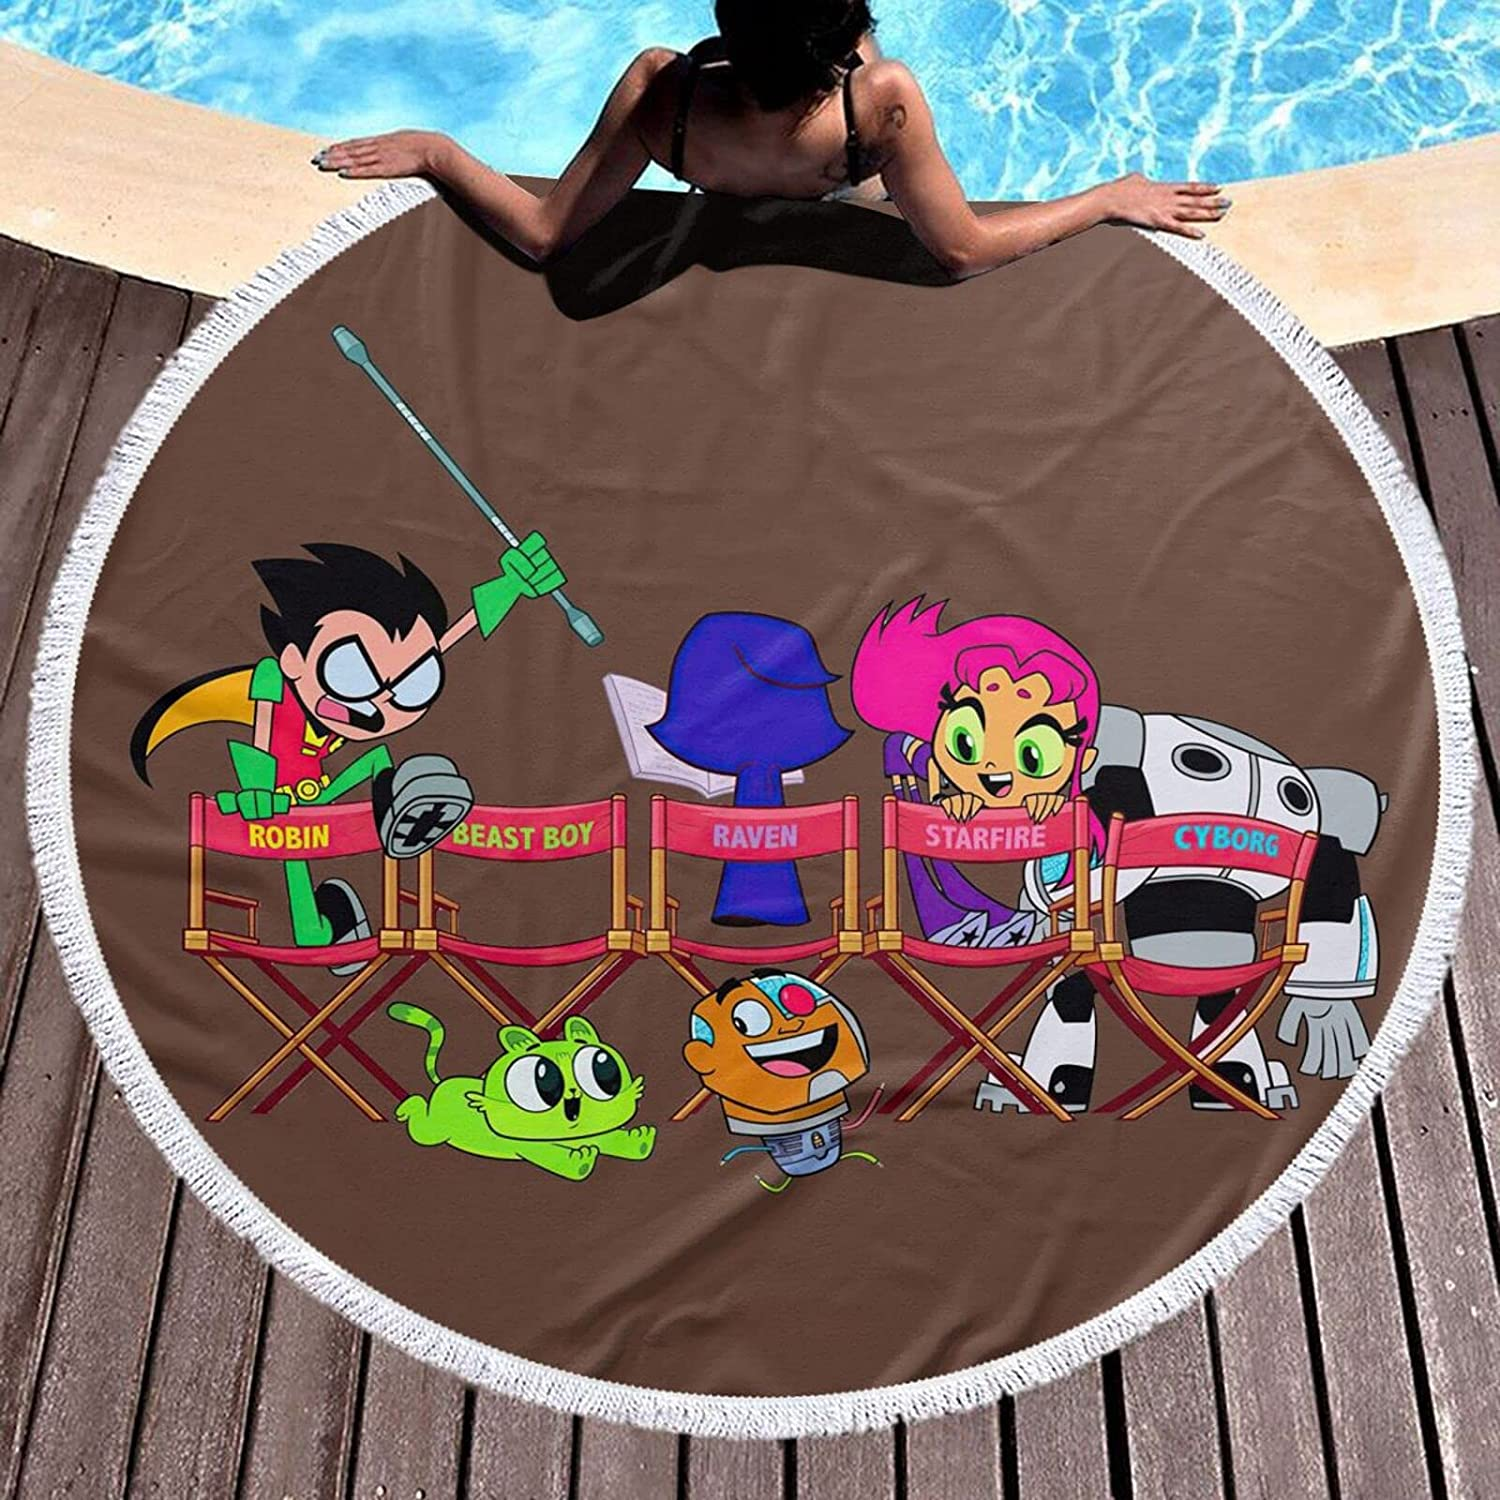 Te-en Titans G-o Anime Round outlet Towel Microfiber Free shipping anywhere in the nation Beach Lightweight